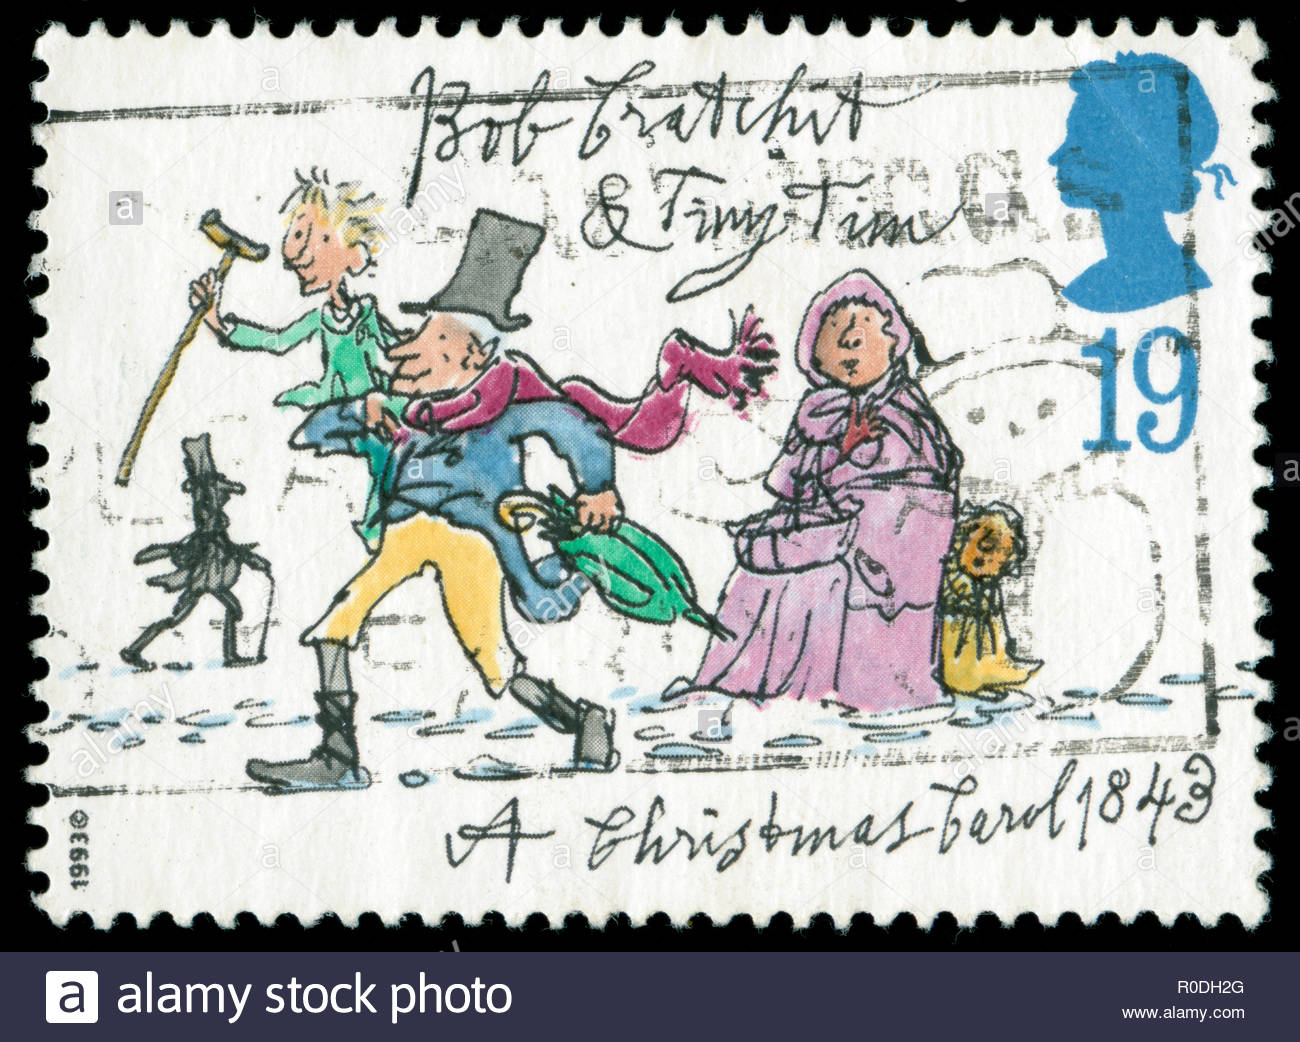 Postmarked stamp from the United Kingdom and Northern Ireland in the  Christmas 1993 - Anniv of Publication of 'A Christmas Carol' series - Stock Image